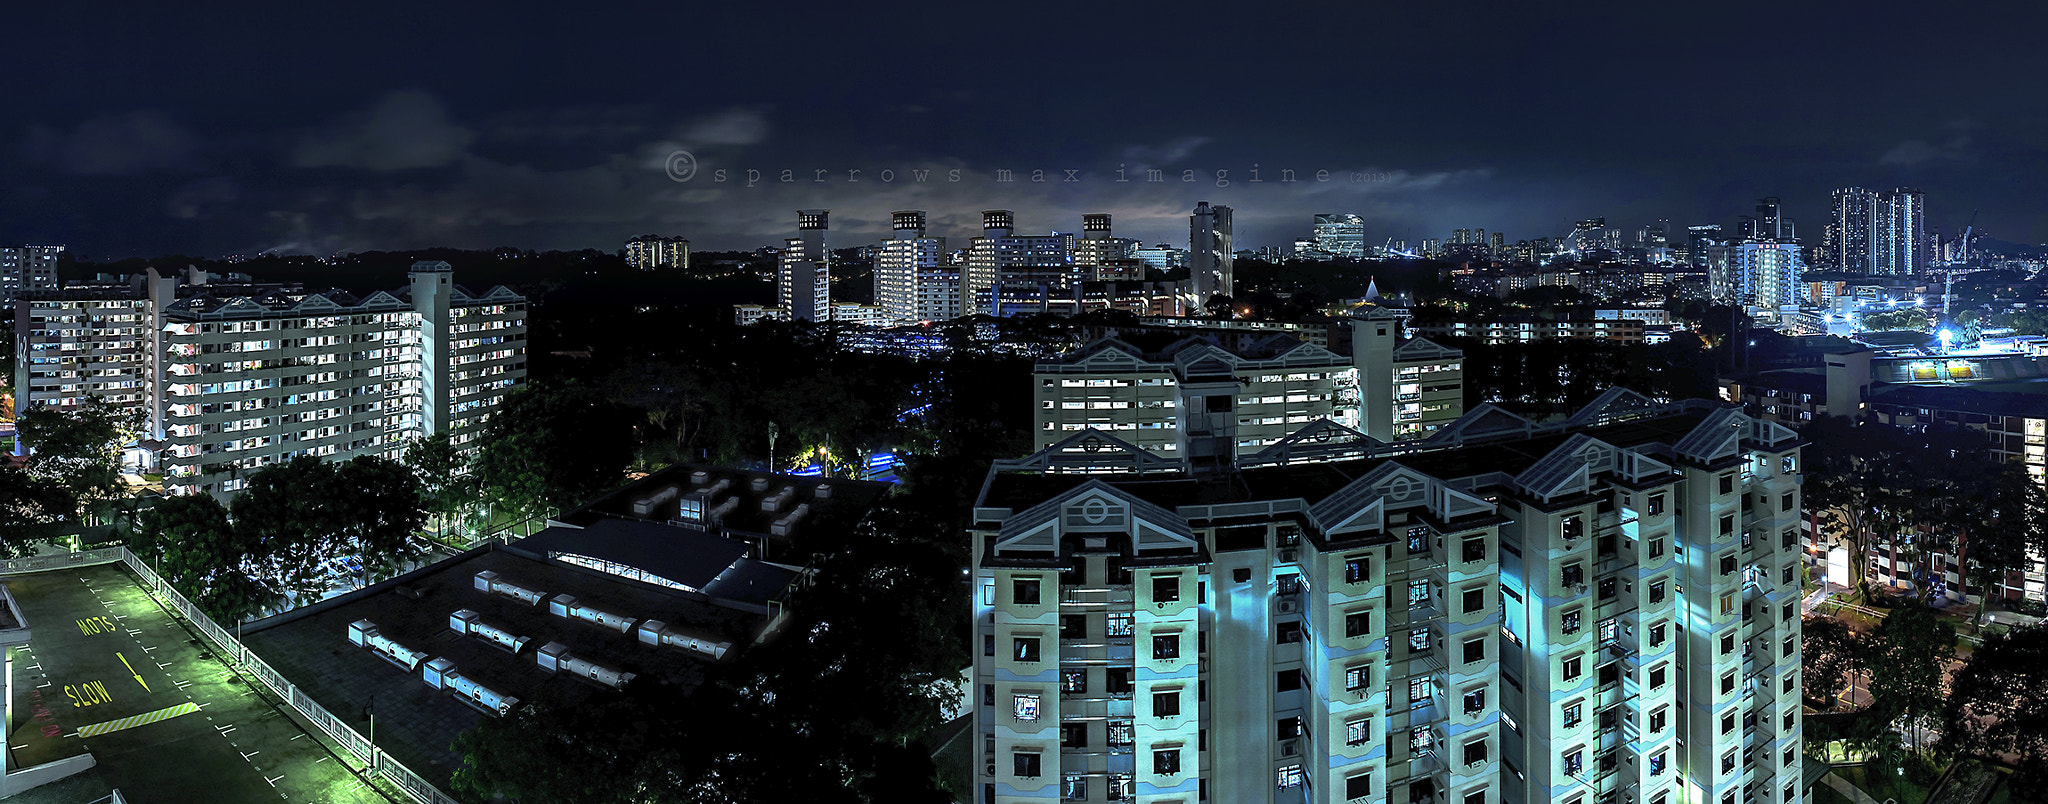 Photograph night skyline by M a x Ooi on 500px